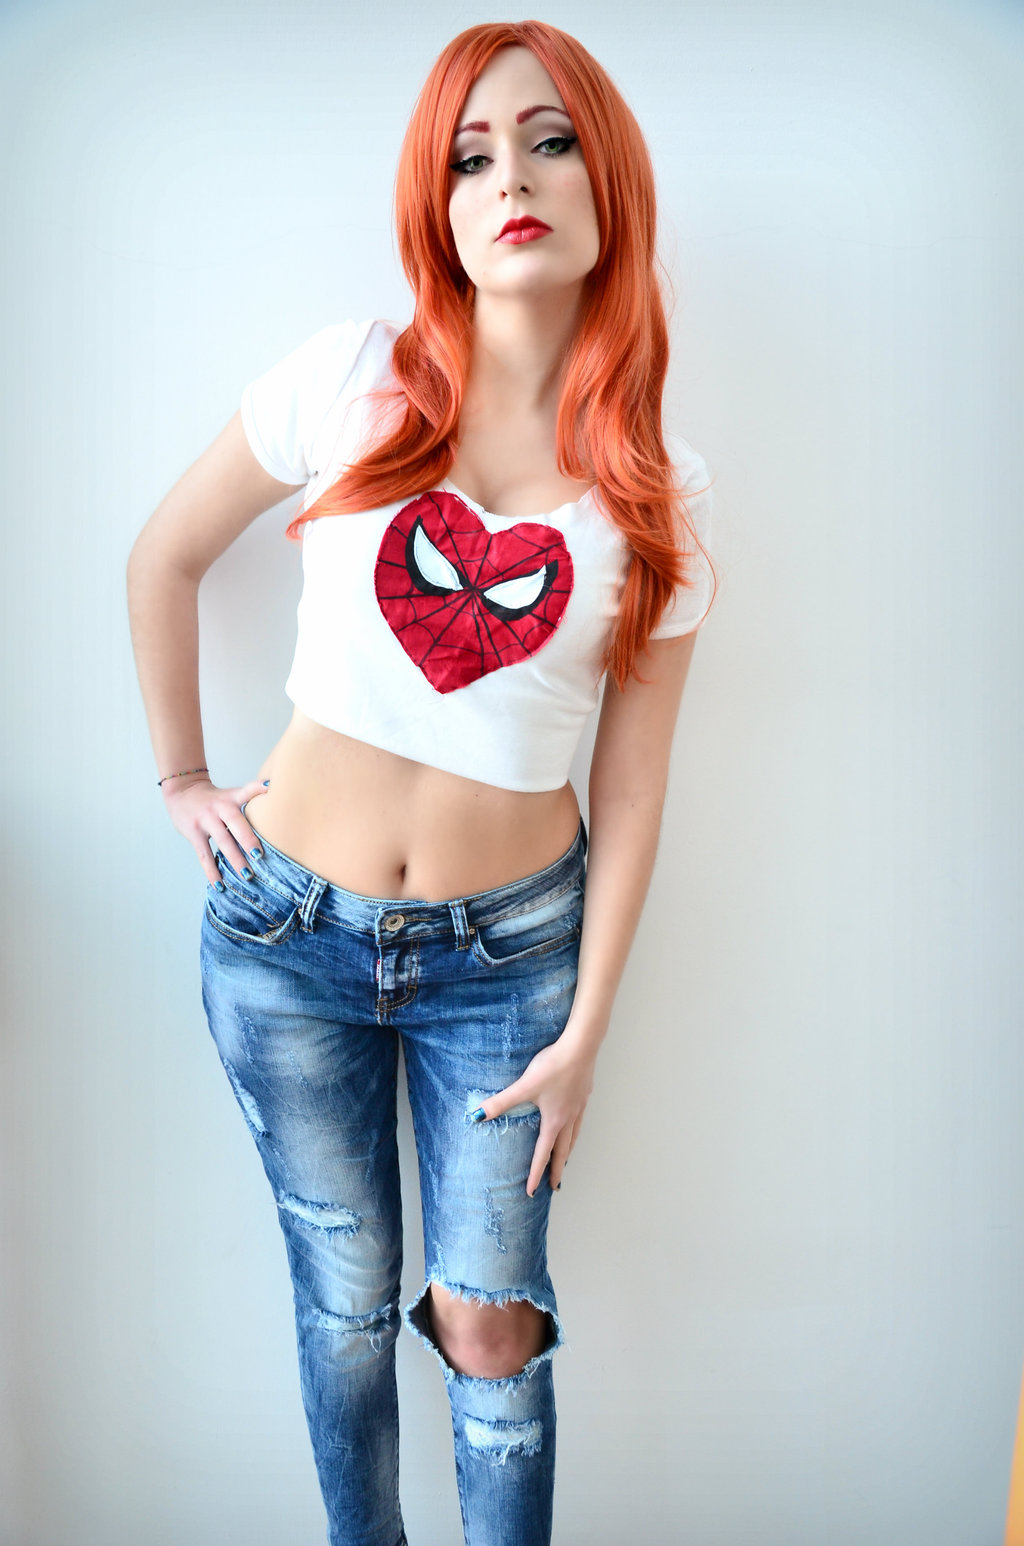 Mary Jane Watson Wallpapers Comics Hq Mary Jane Watson Pictures